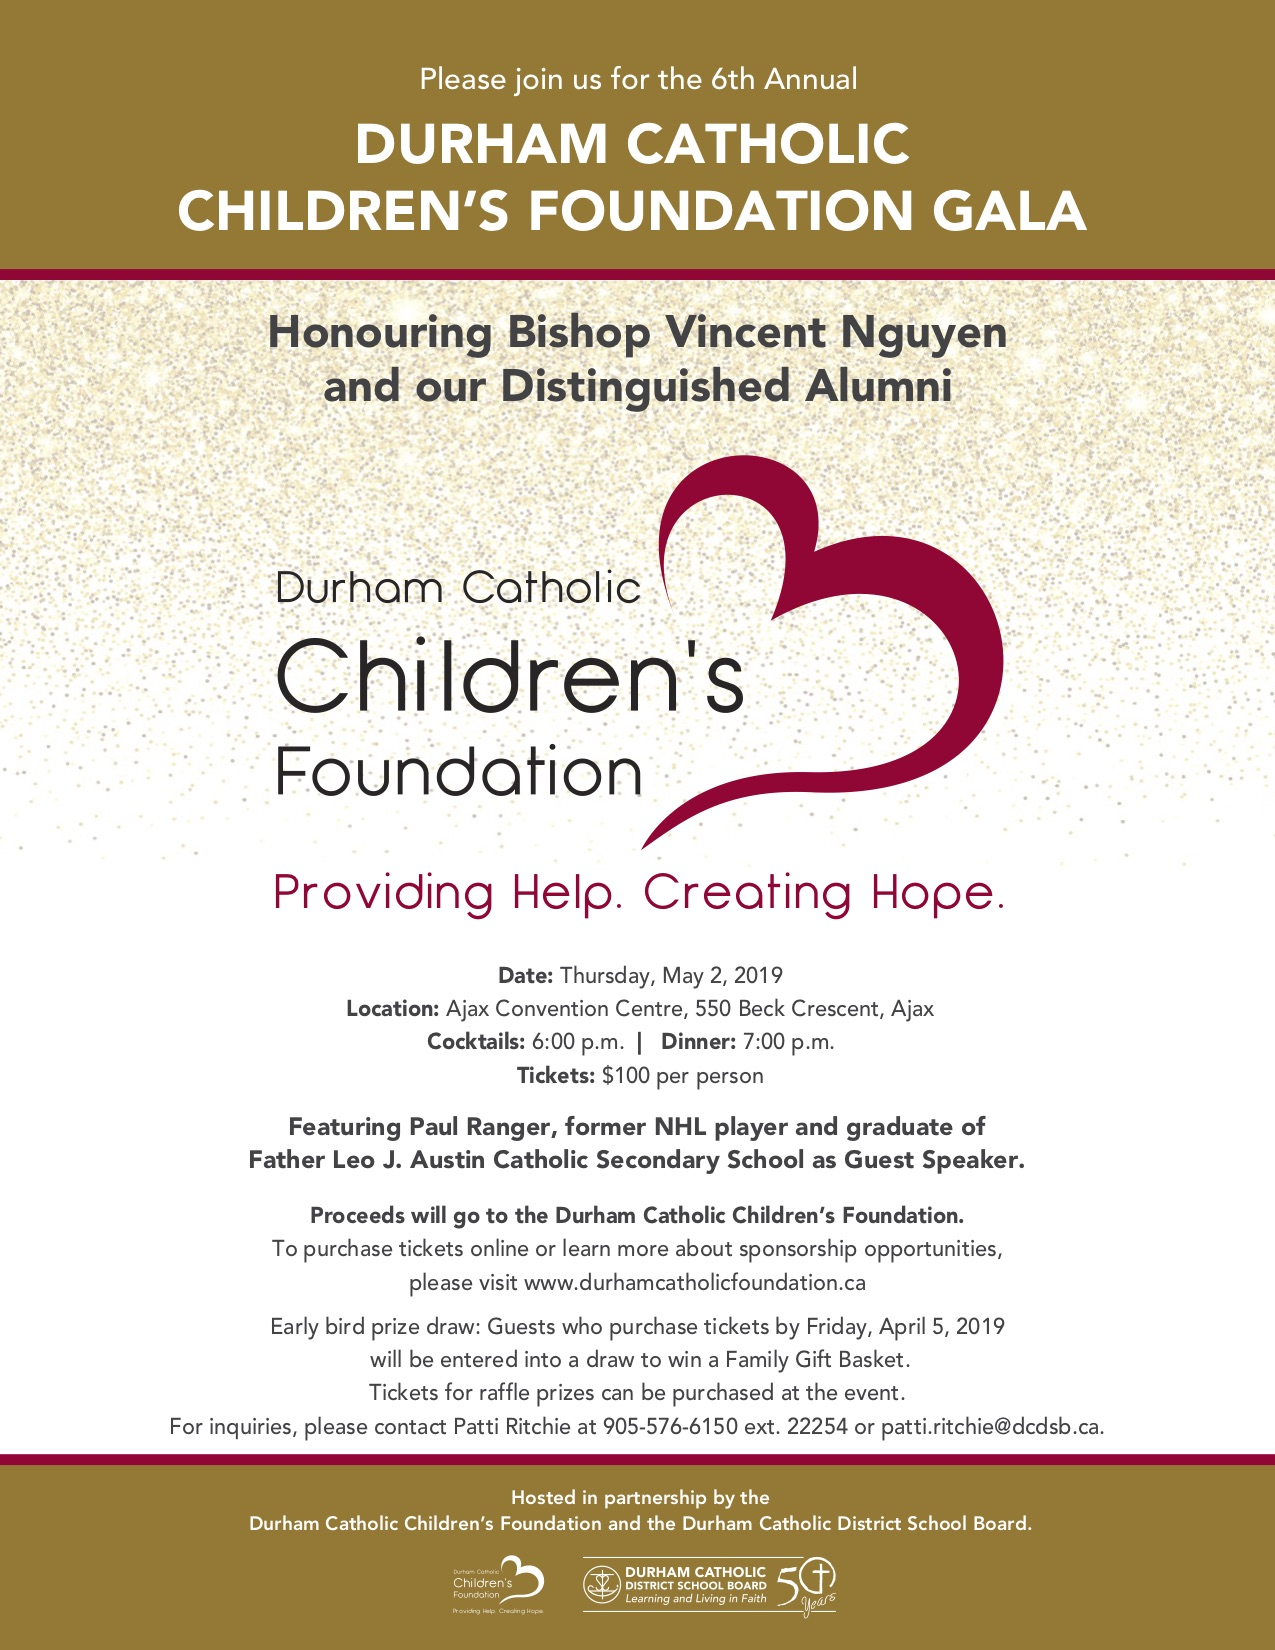 Foundation Gala Poster